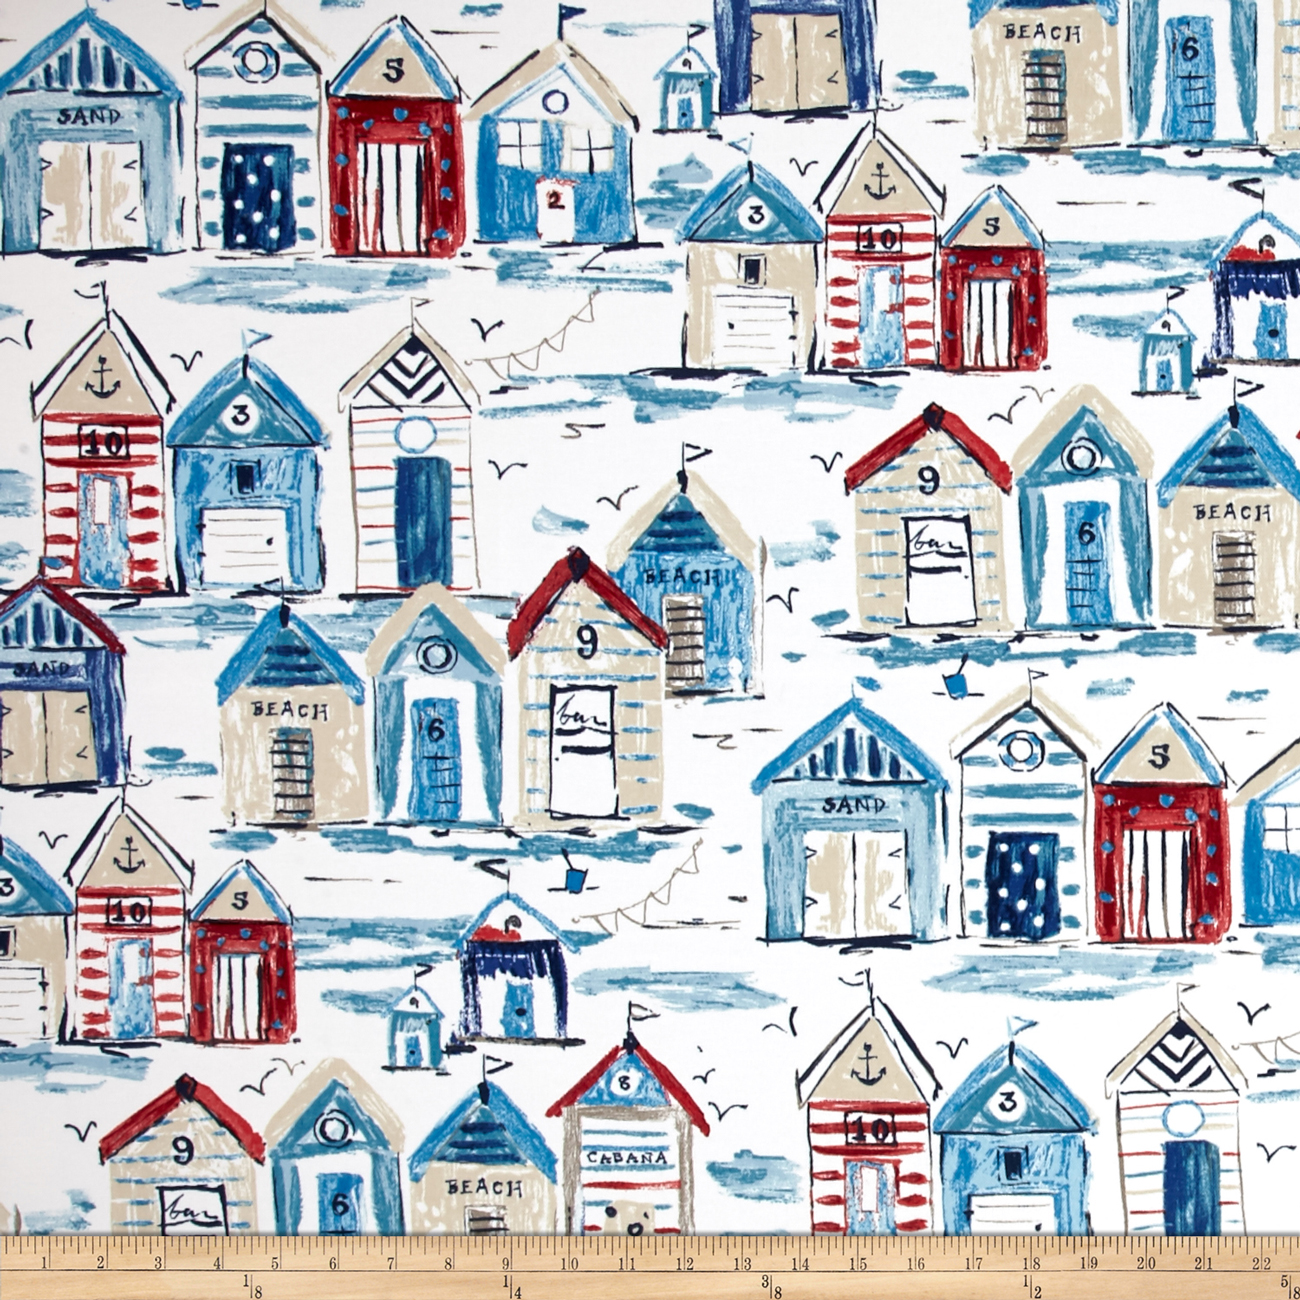 Richloom Solarium Outdoor Bay Cove Sailor Fabric By The Yard by Richloom in USA